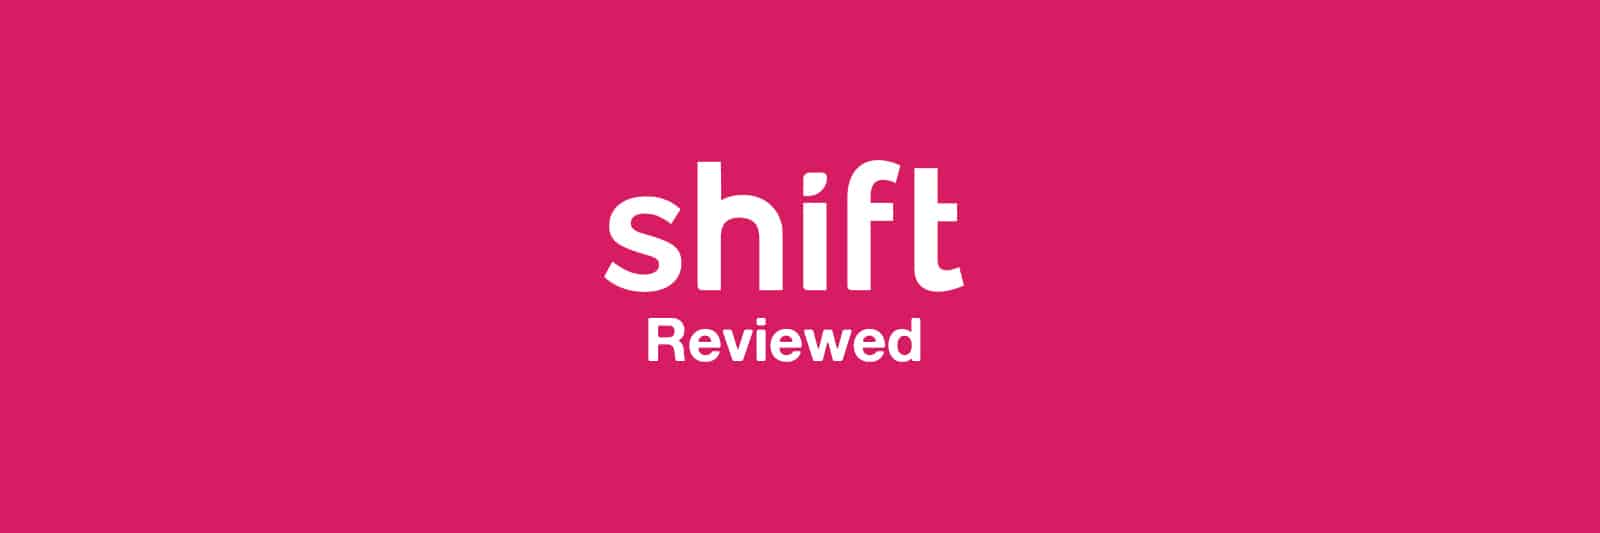 shift-review